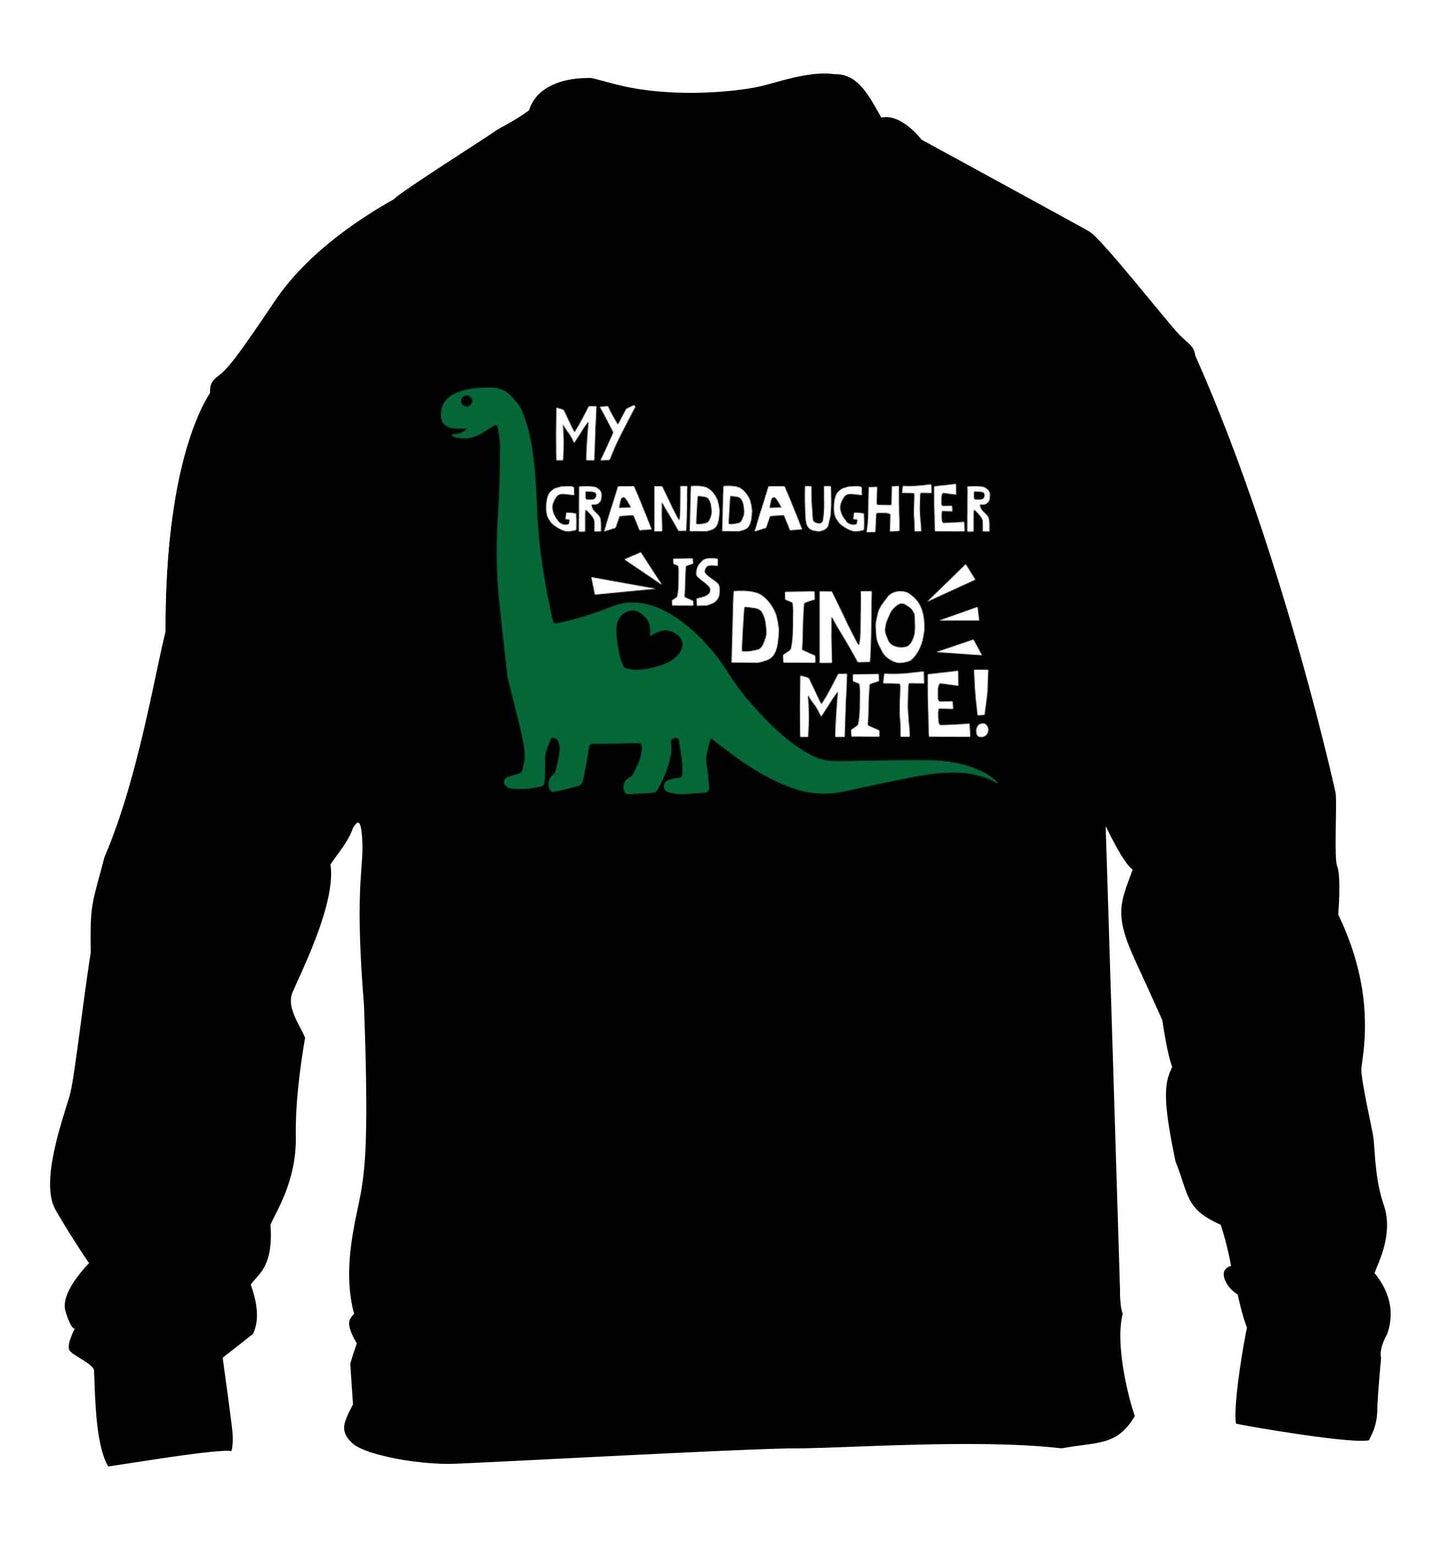 My granddaughter is dinomite! children's black sweater 12-13 Years